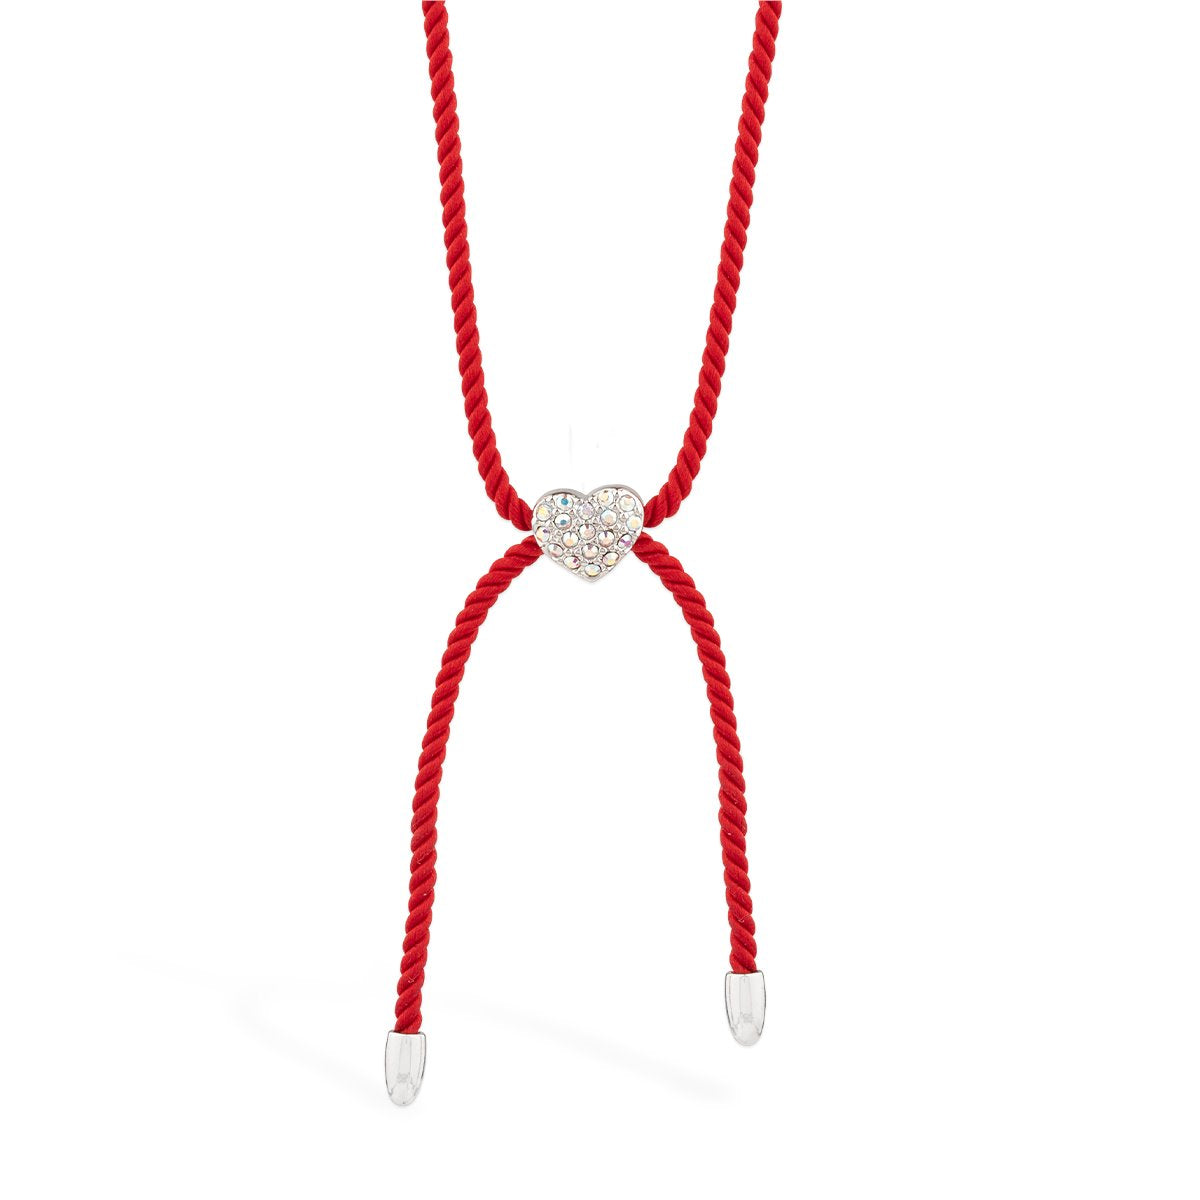 Wear Red Heart Necklace forevercrystals